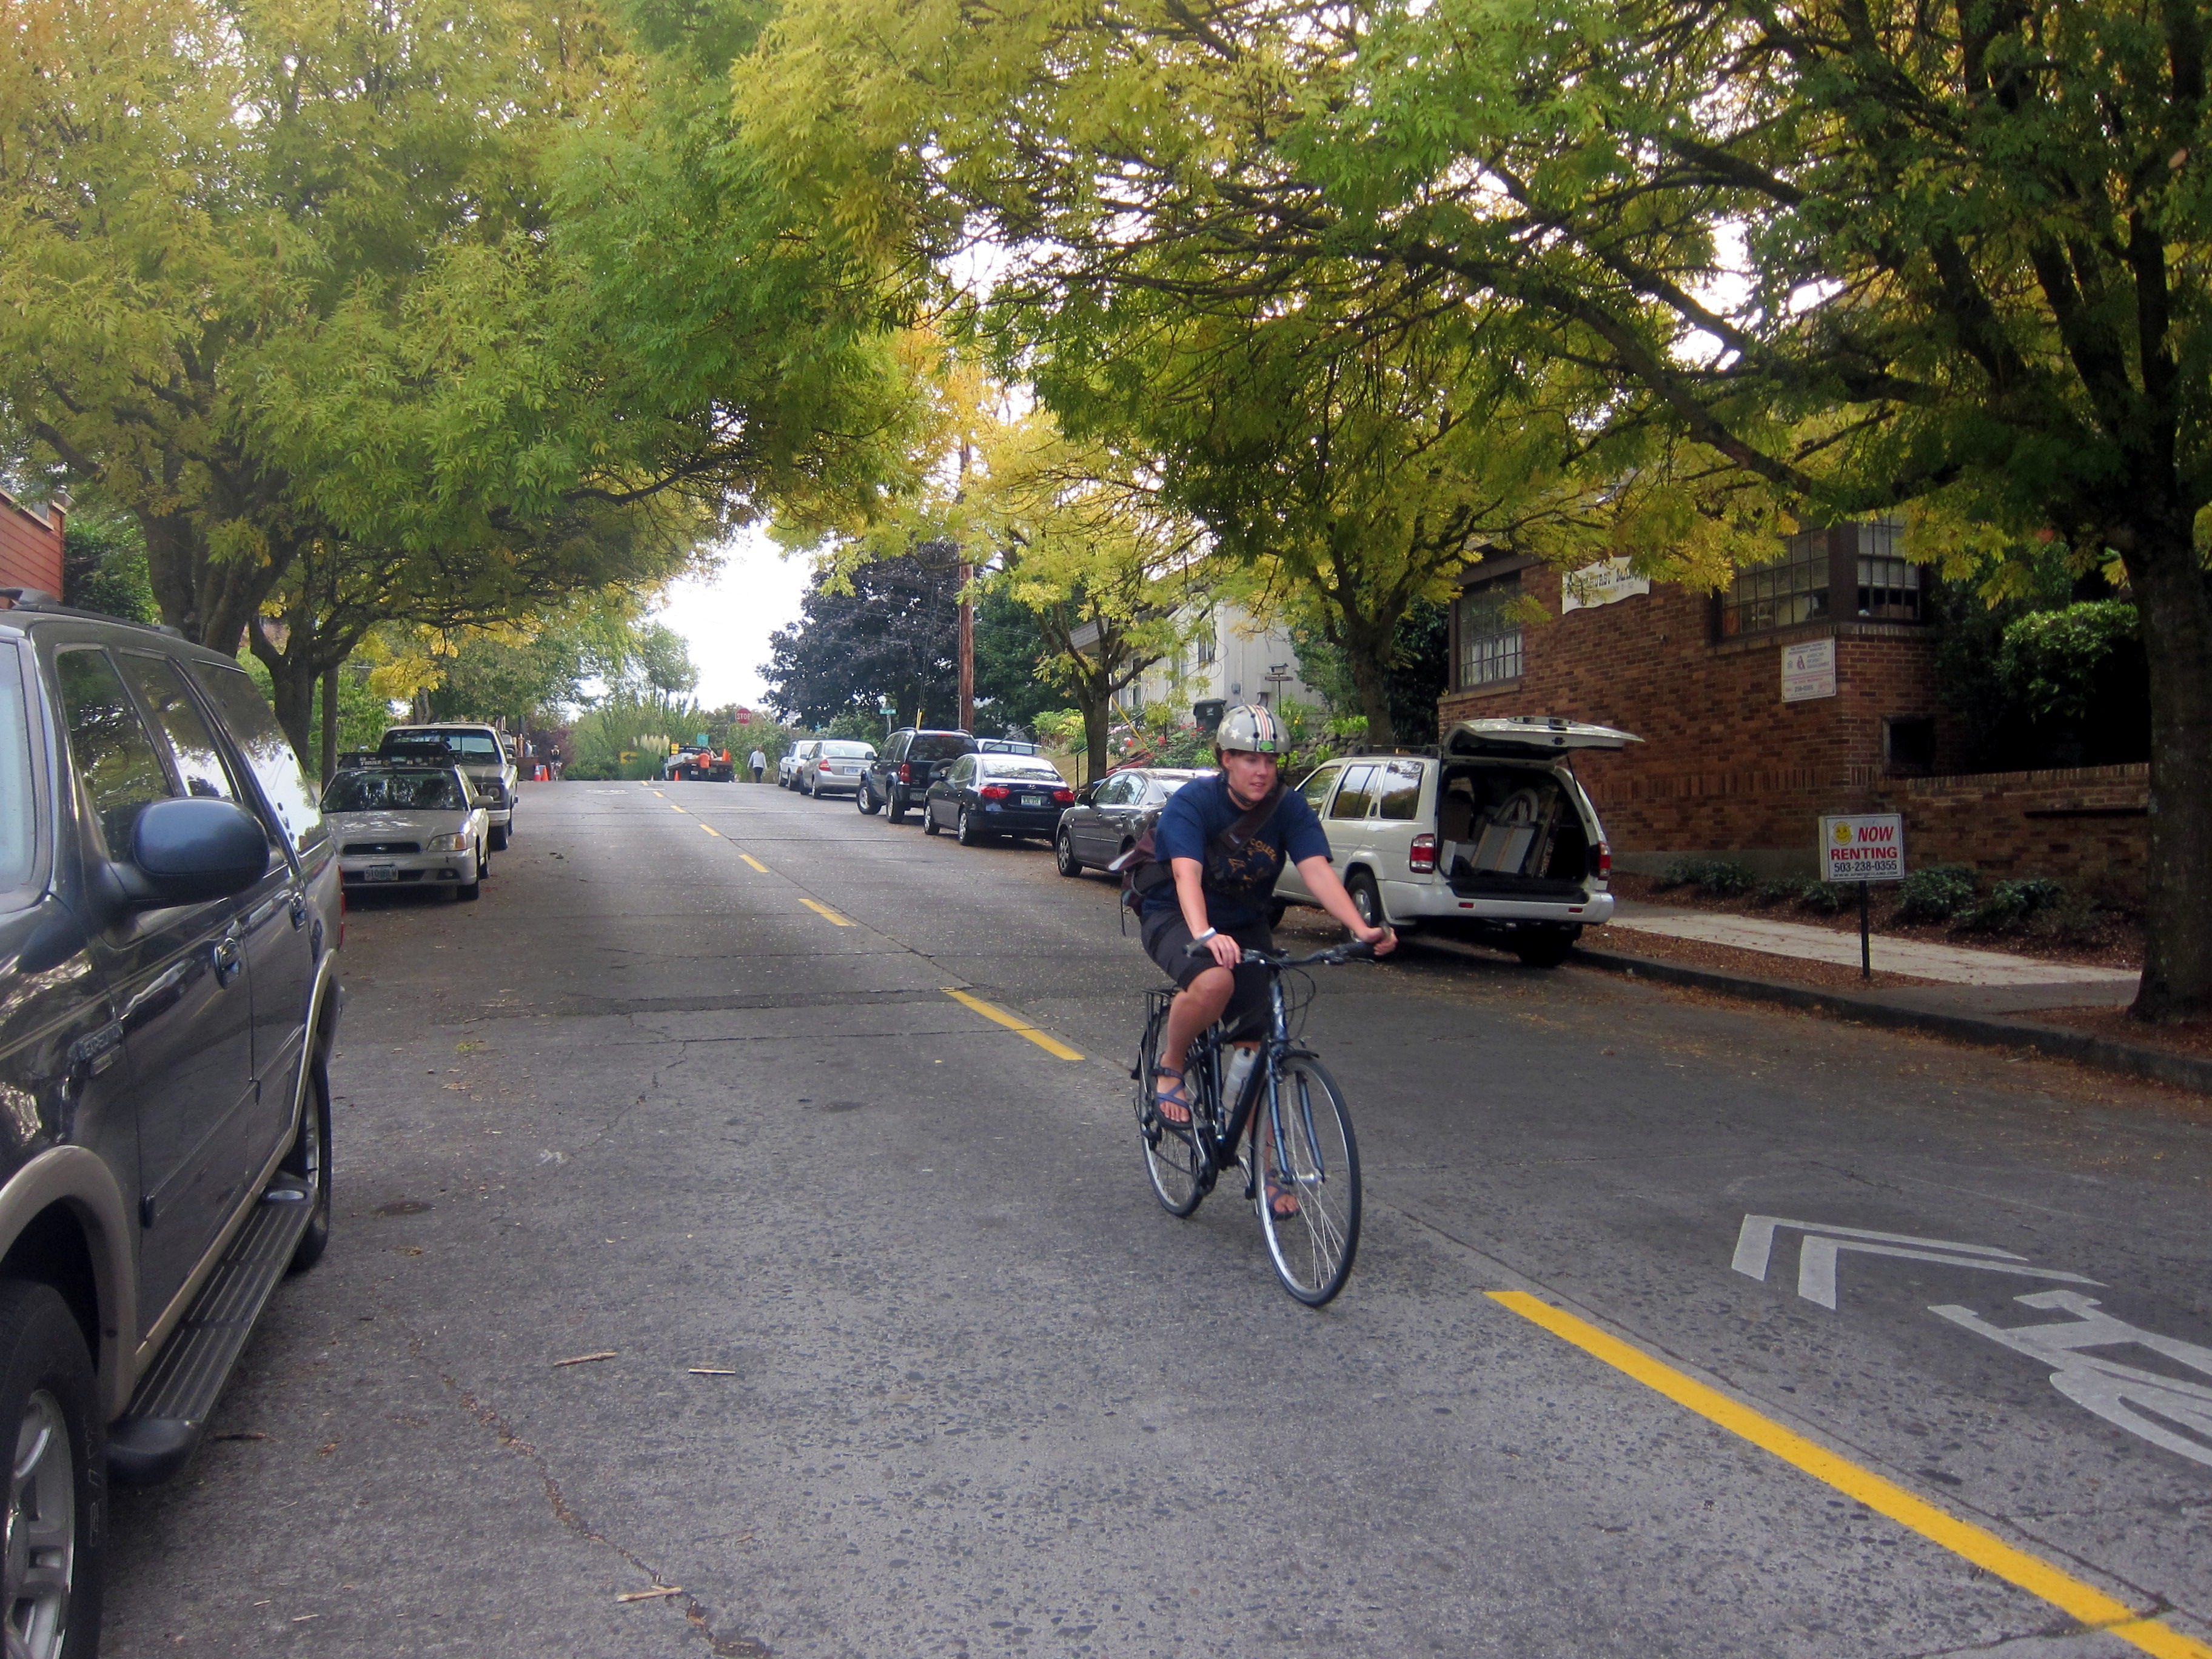 A first-generation greenway on Ankeny Street has sharrows and traffic diverters, though no speed humps.